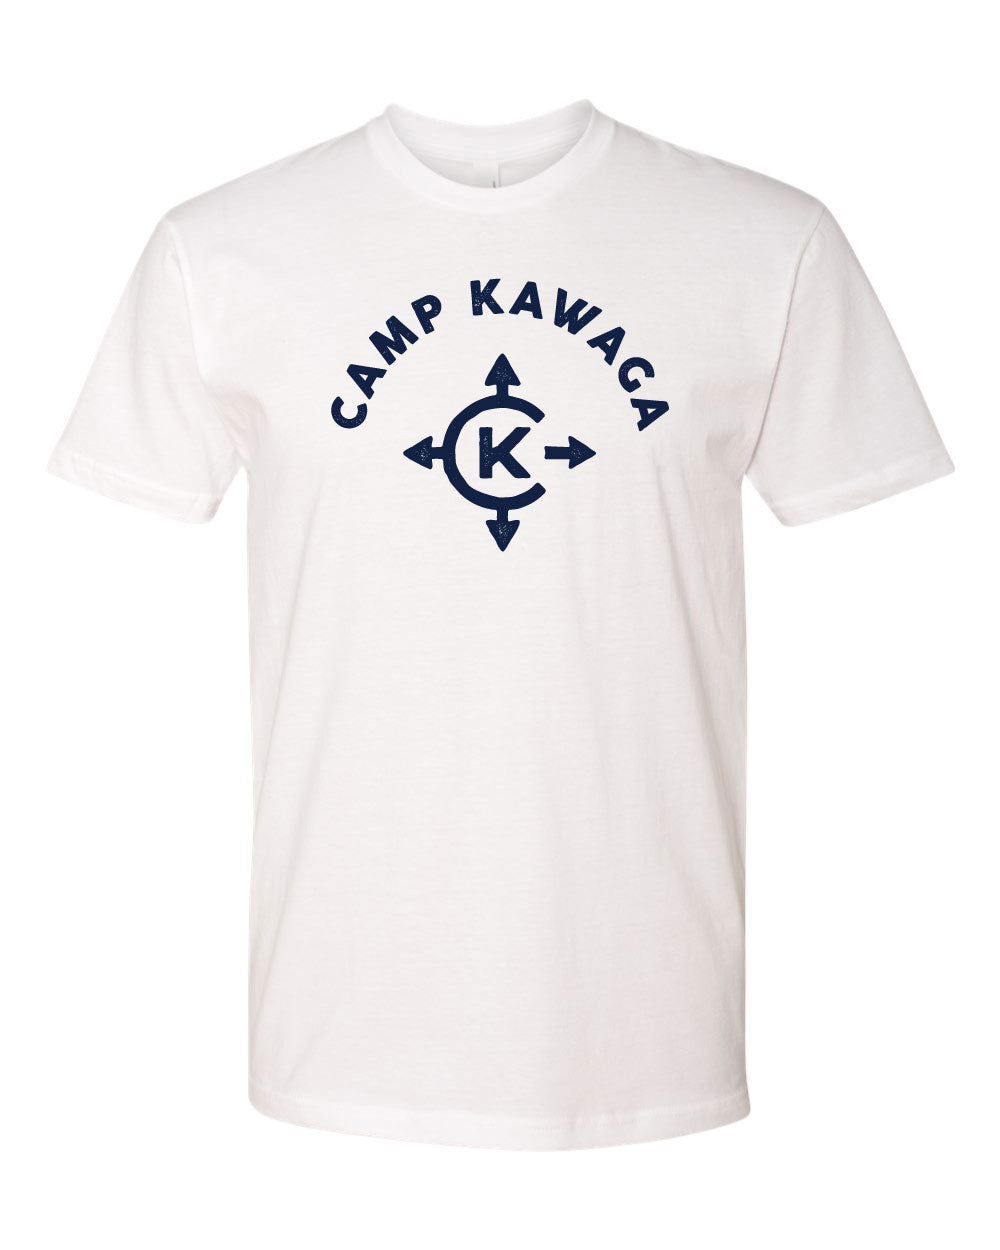 Camp Kawaga Required Tee